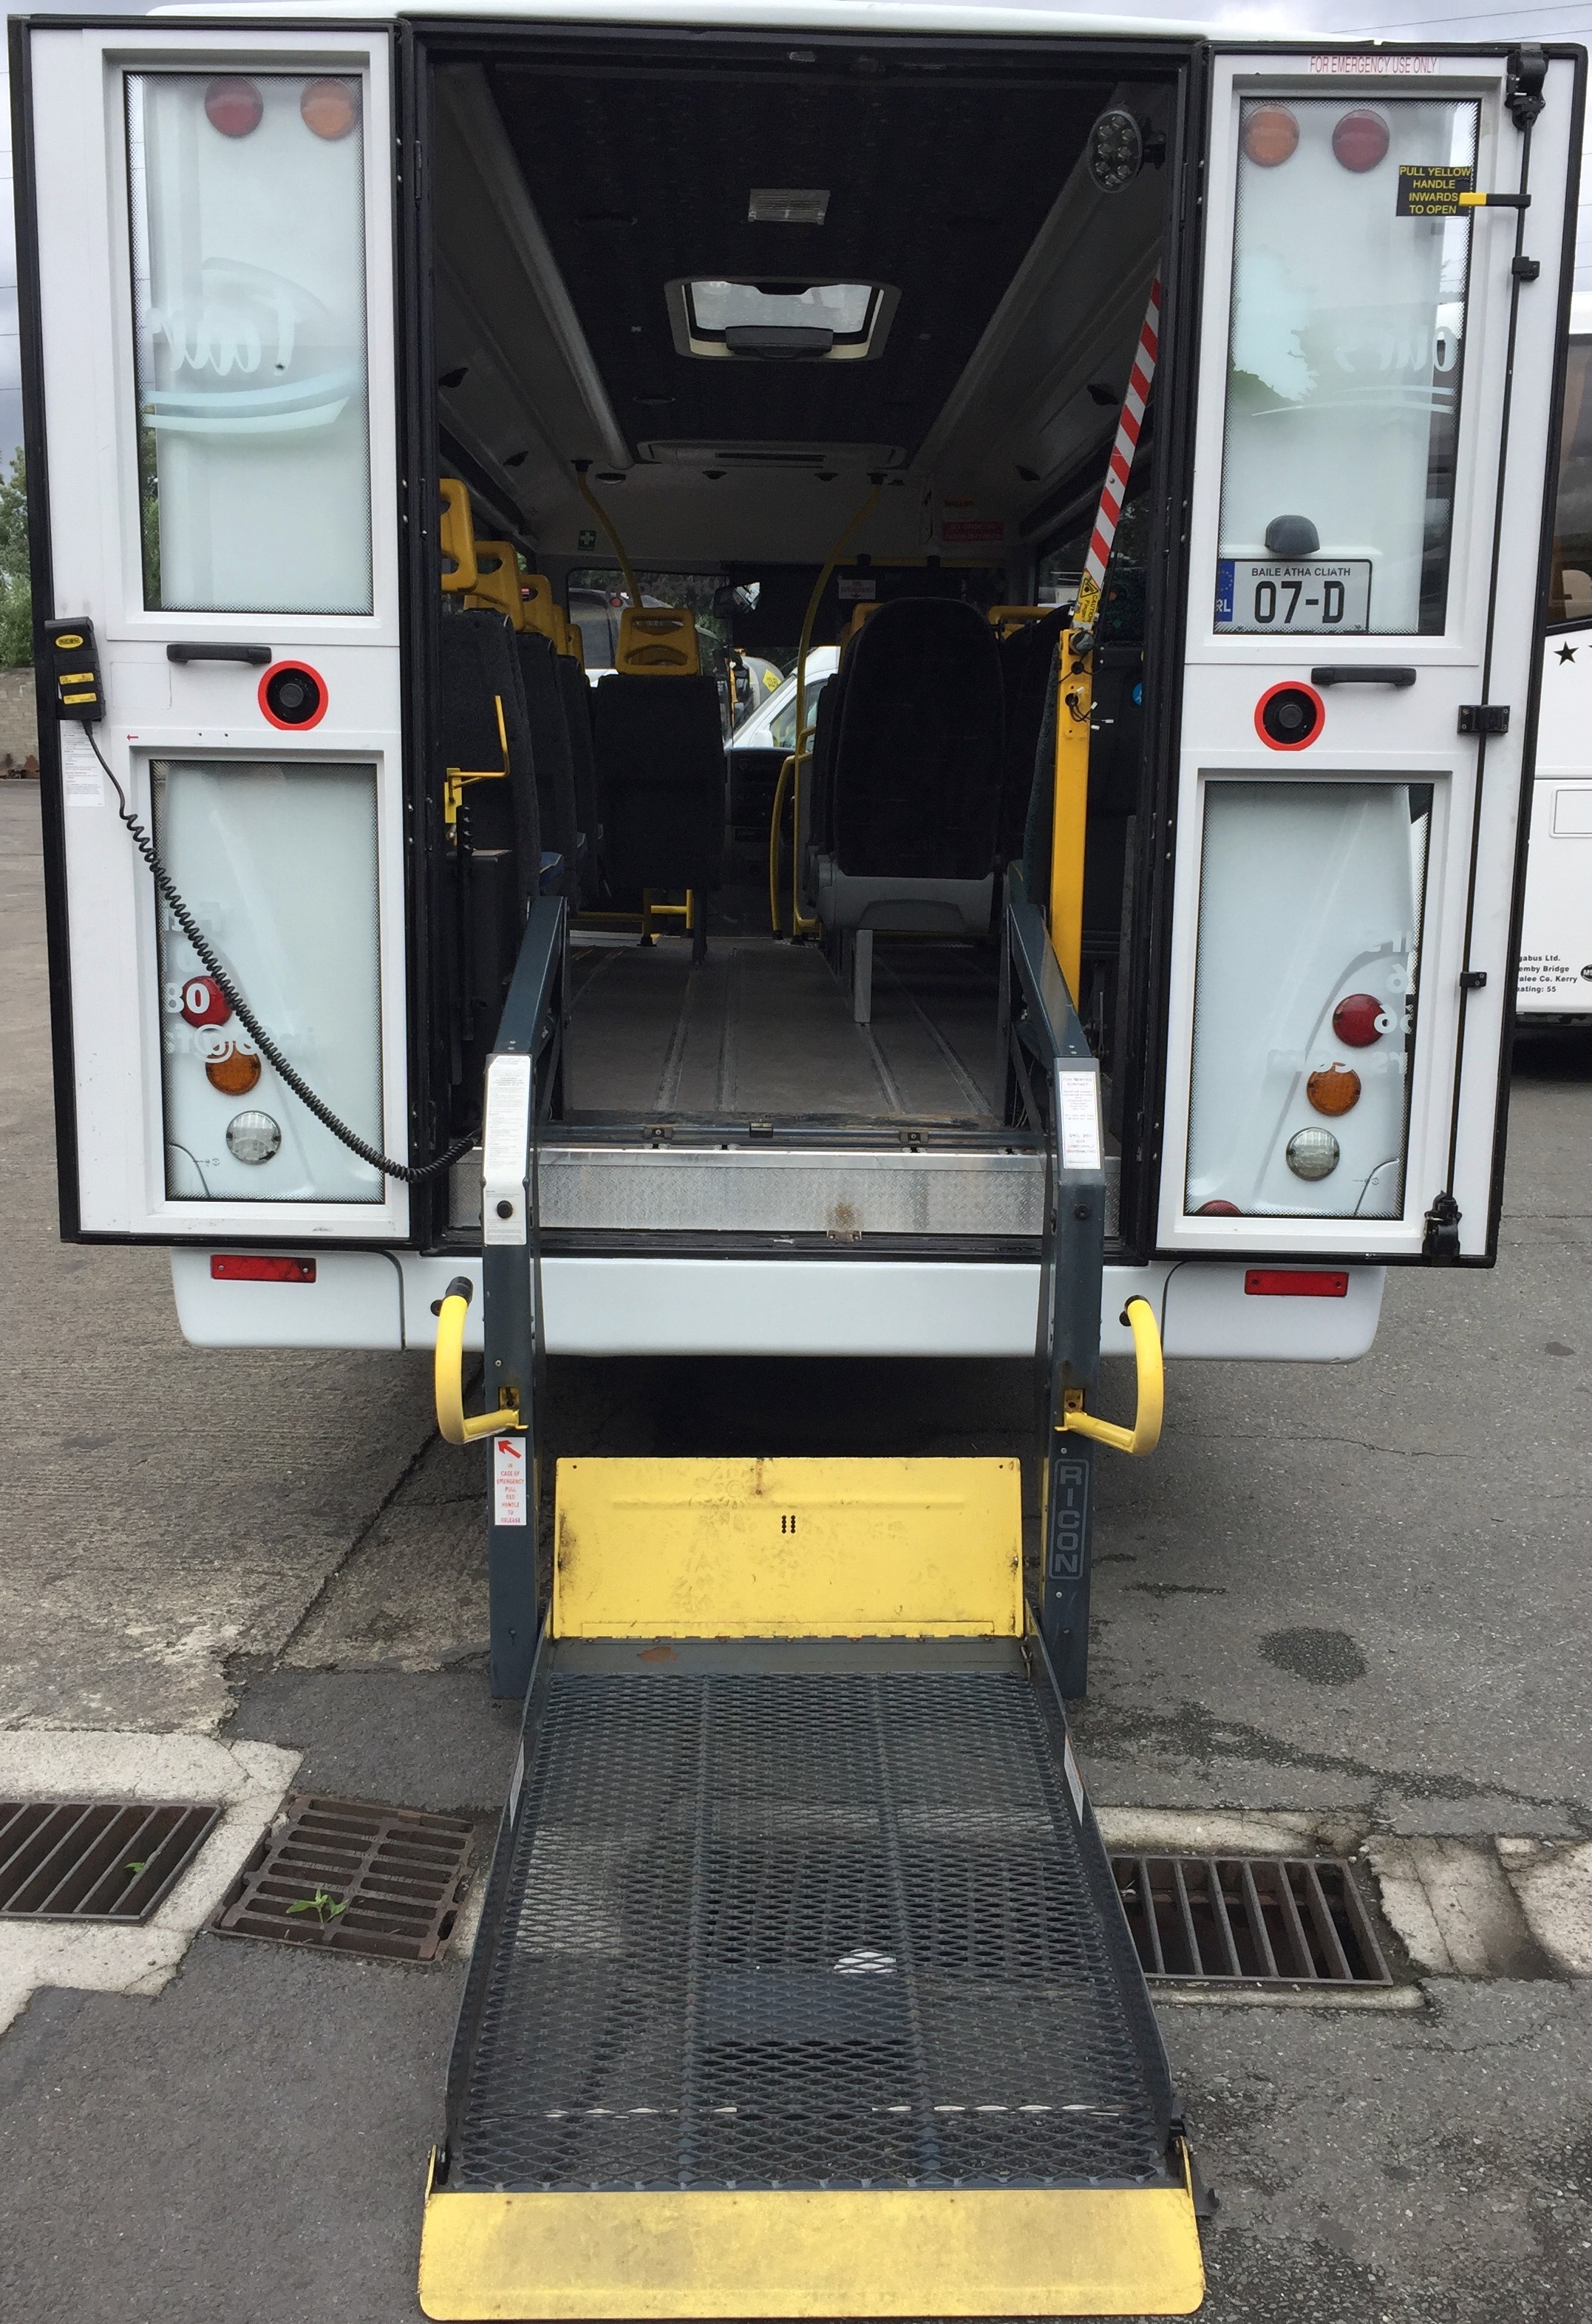 Volkswagen Crafter wheelchair accessible vehicle.